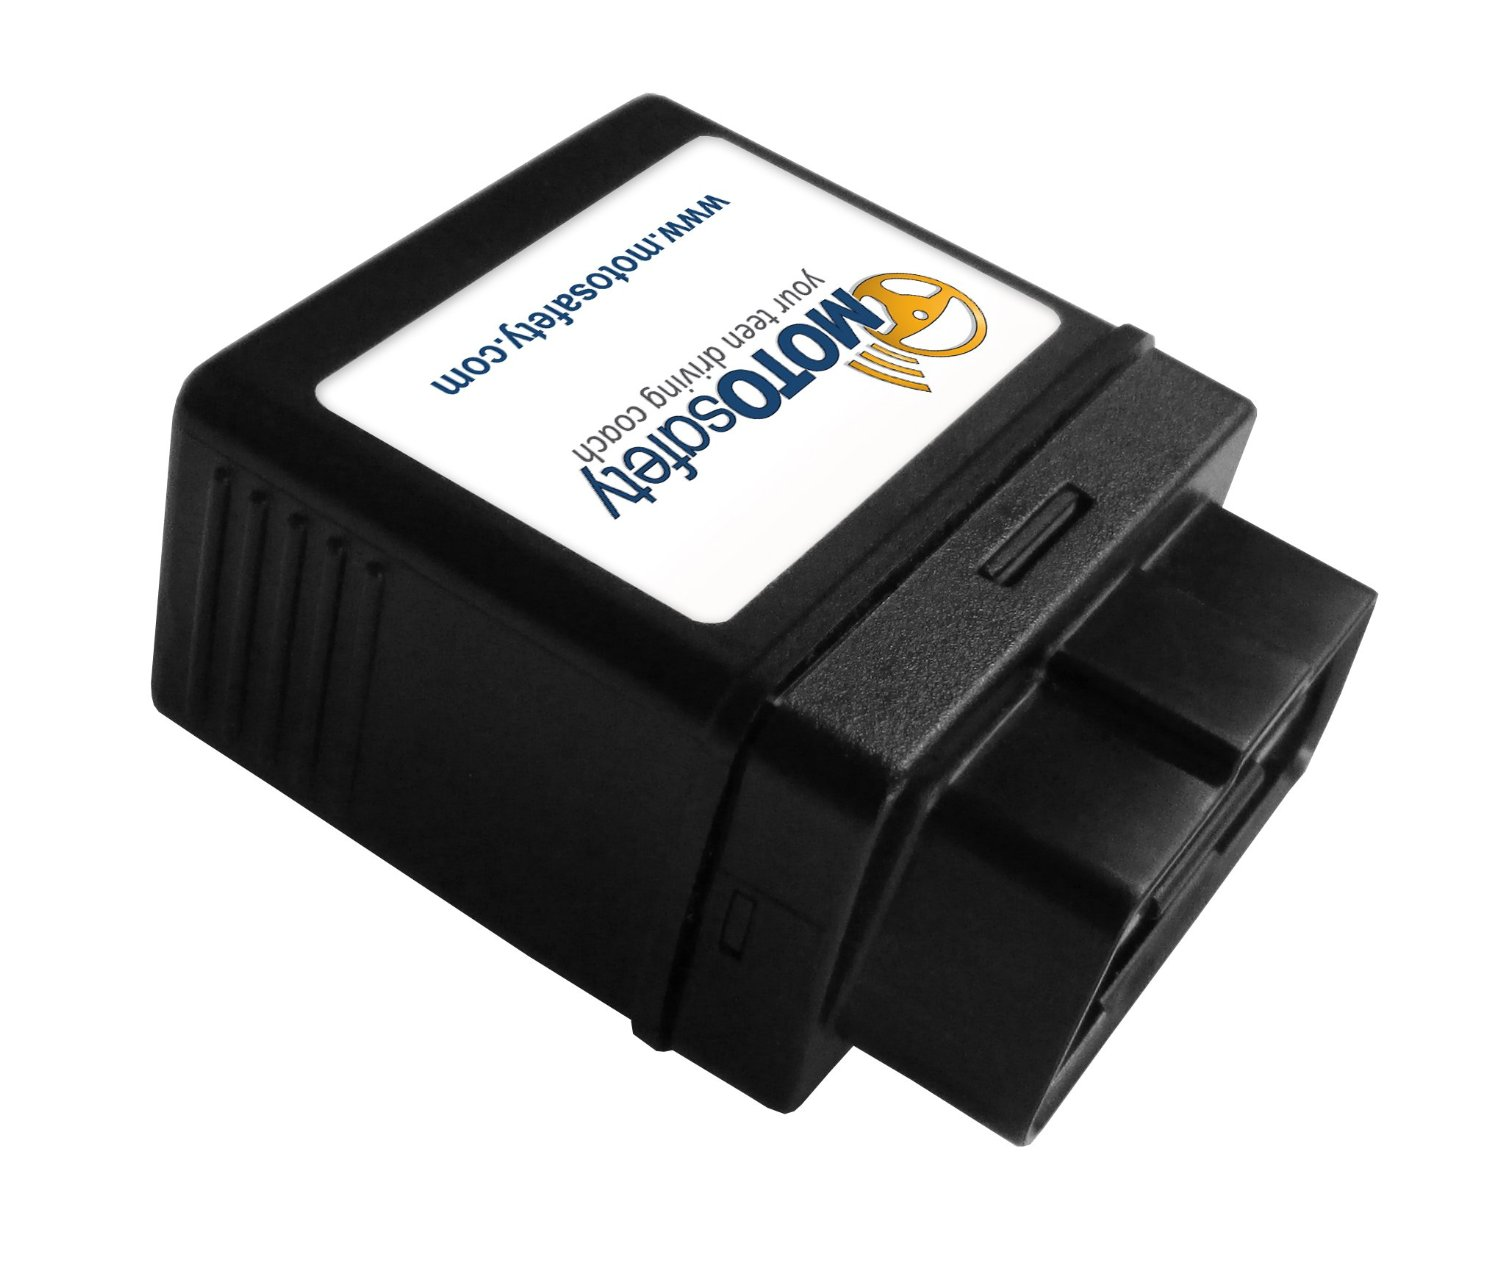 MotoSafety Vehicle GPS Tracking & Monitoring